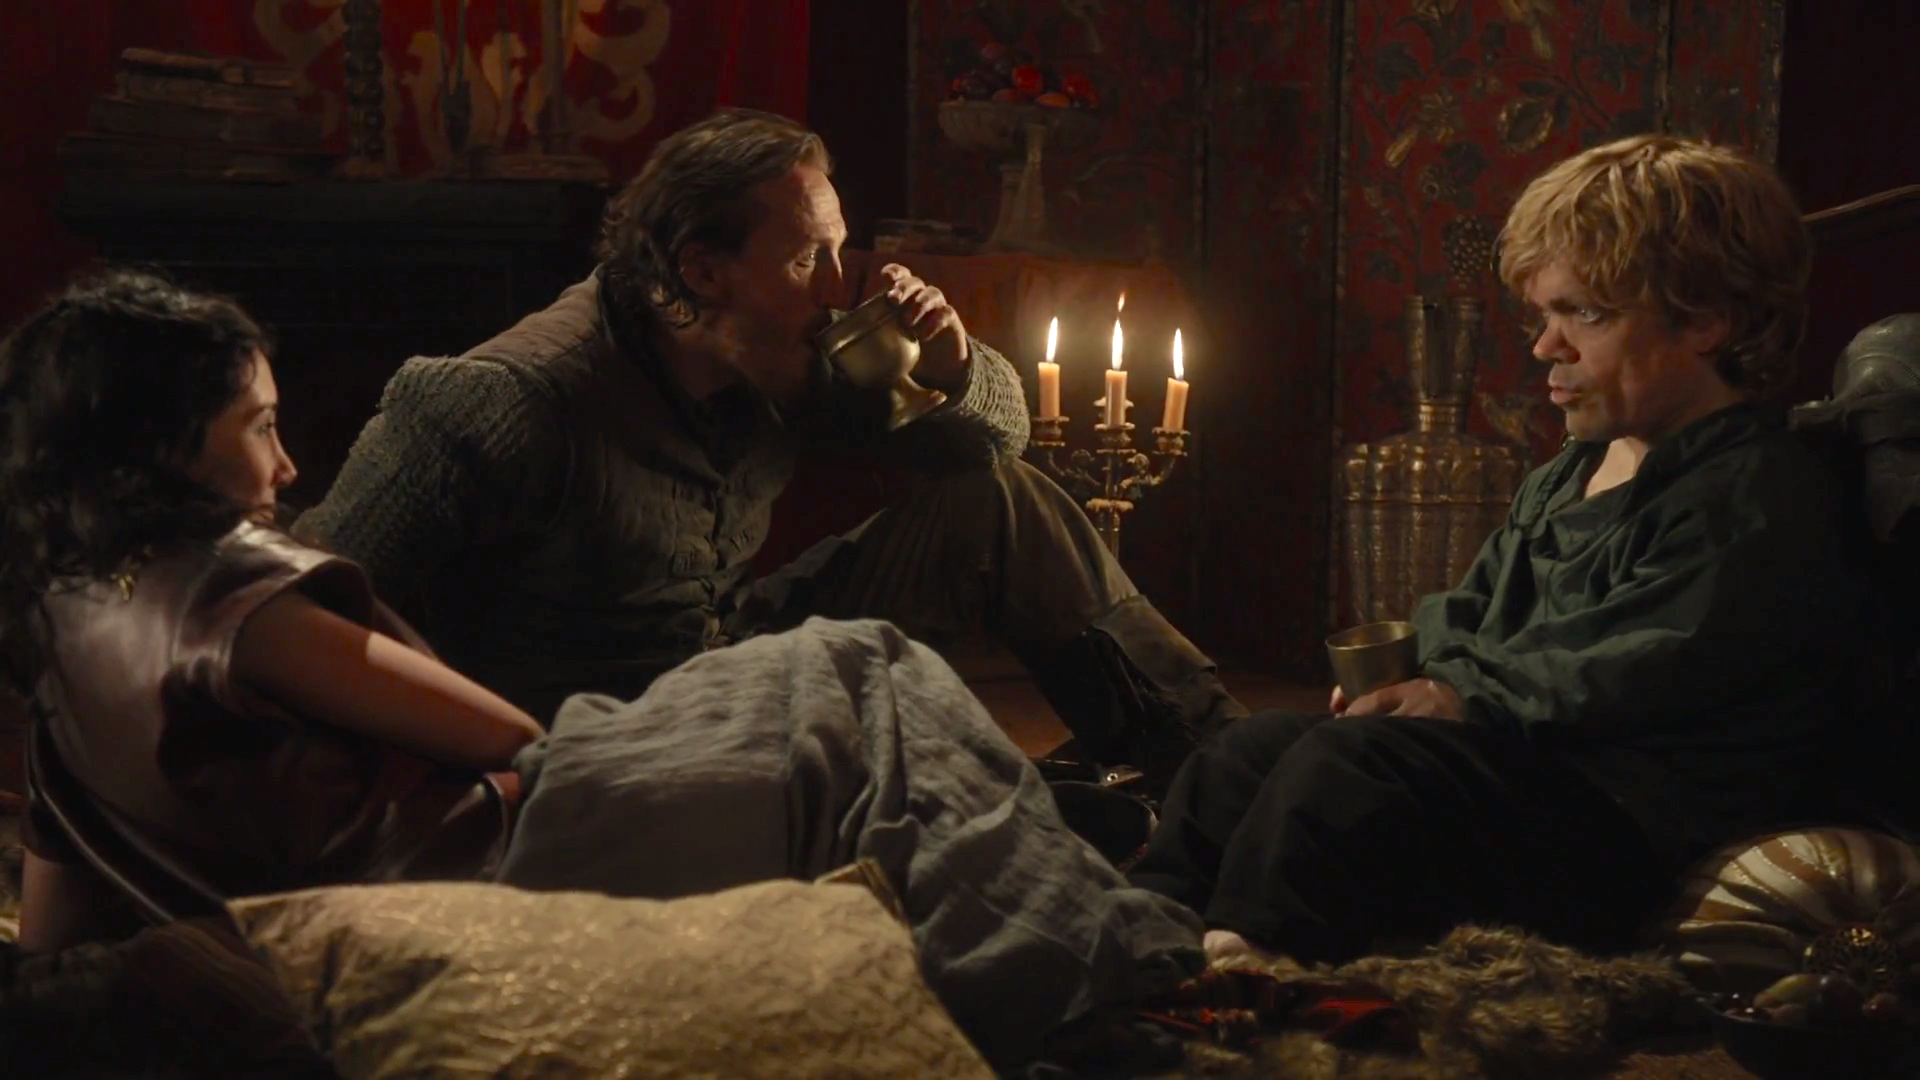 Tyrion, Bronn, and Shae playing Tyrion's drinking game.